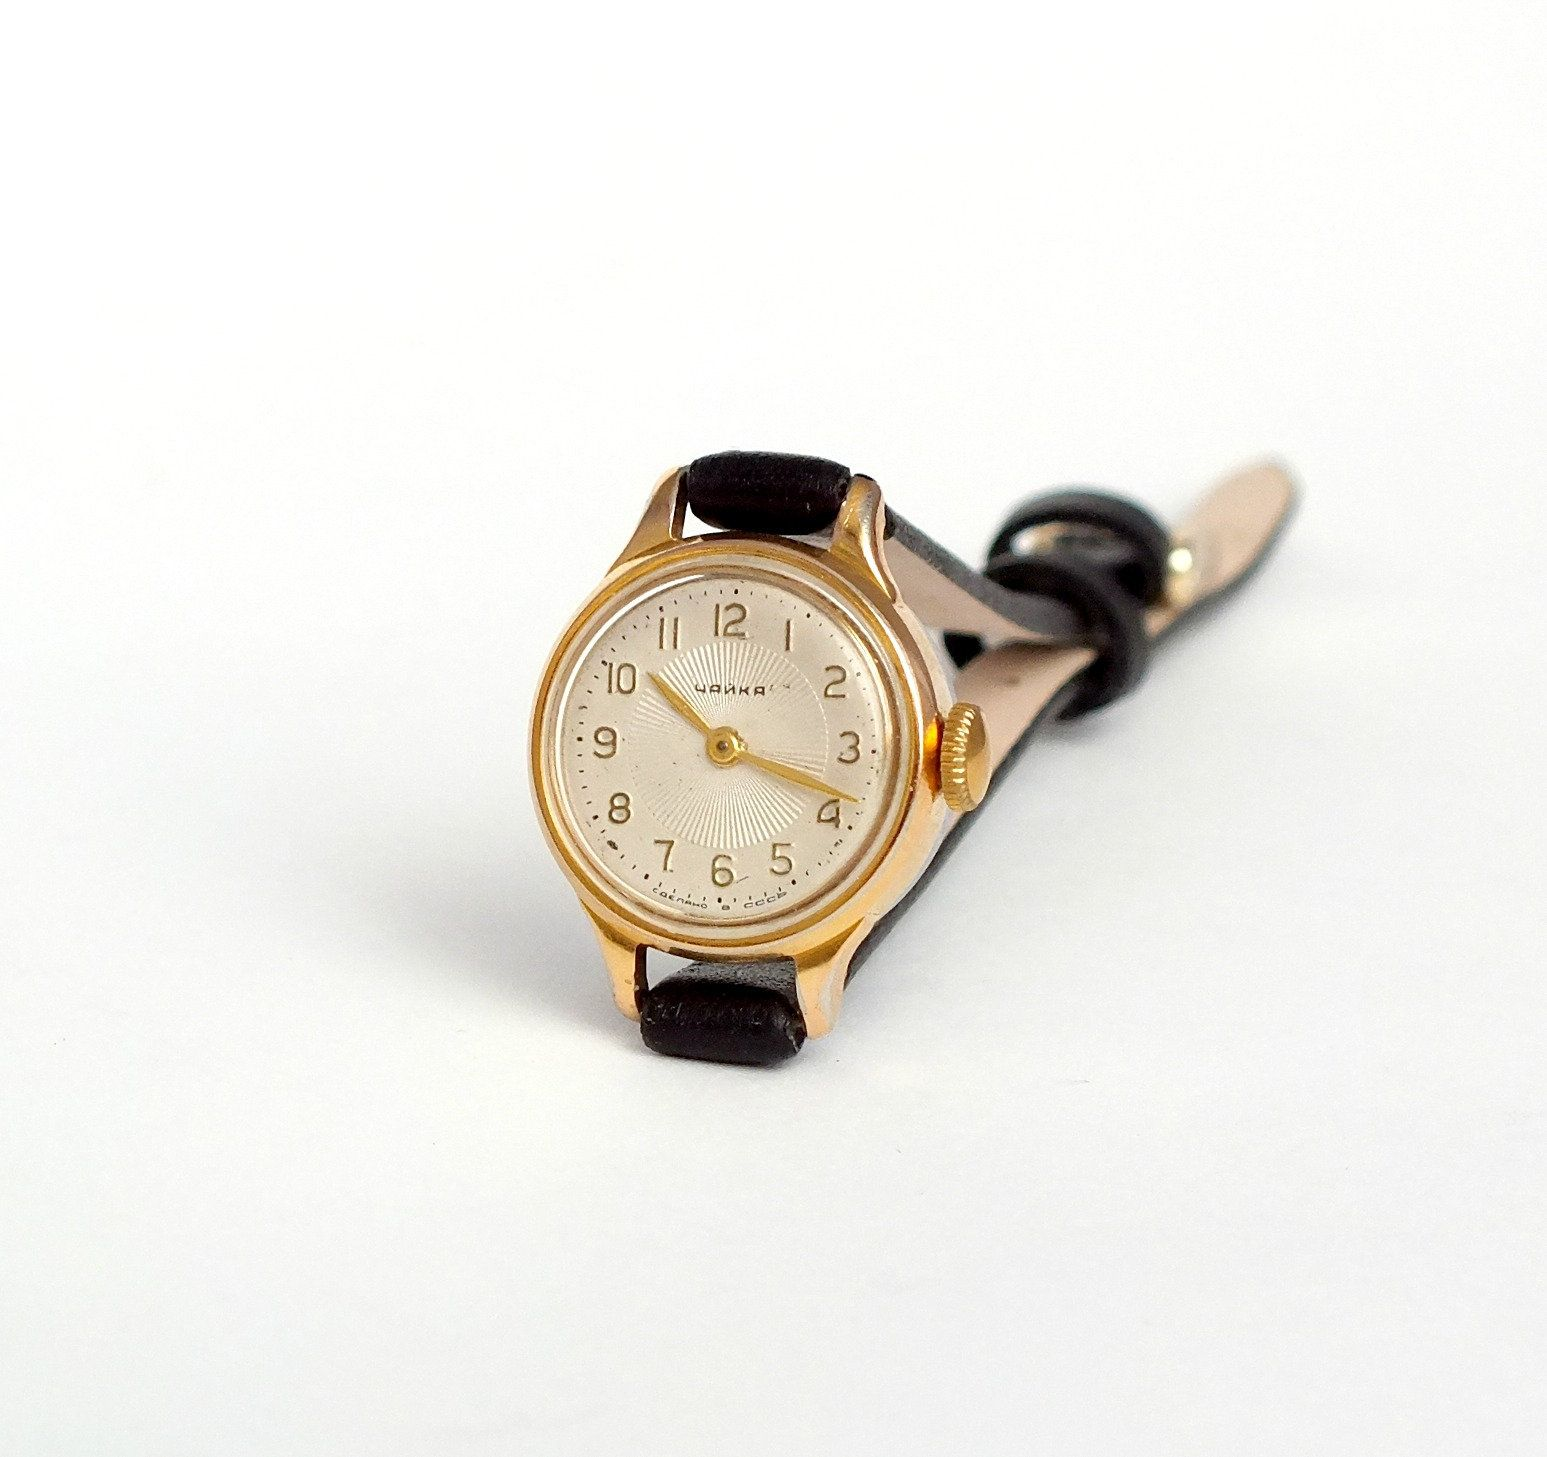 Vintage Very Small Womens Watch Chaika Seagull Round Dial Wristwatch Mechanical Gold Plated Ladies Watch 60s Tiny Cocktail Watch Gift Her Saatler Taki Mucevher